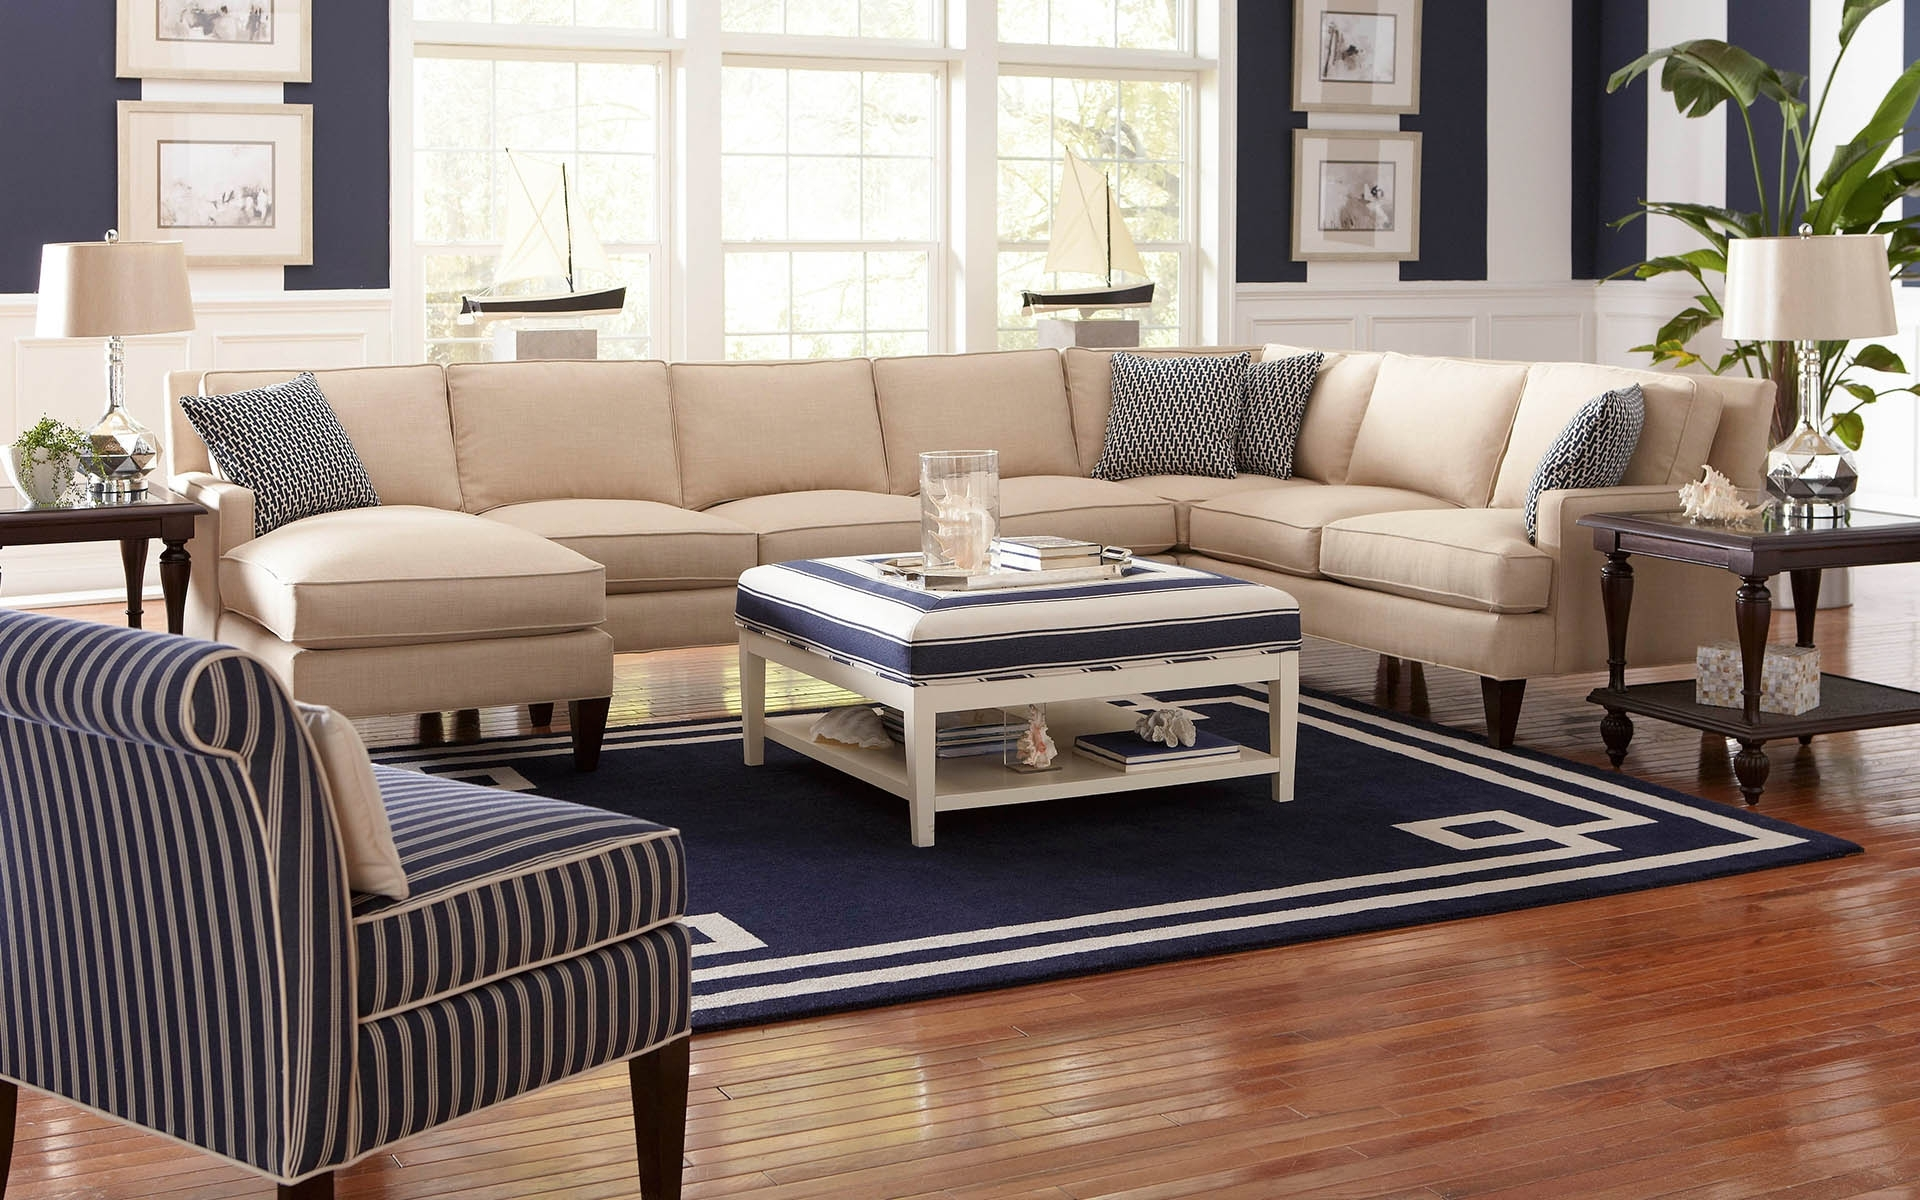 Appealing Sectional Sofas Havertys 14 For Your Mini Sectional Sofas  Intended For Sectional Sofas At Havertys